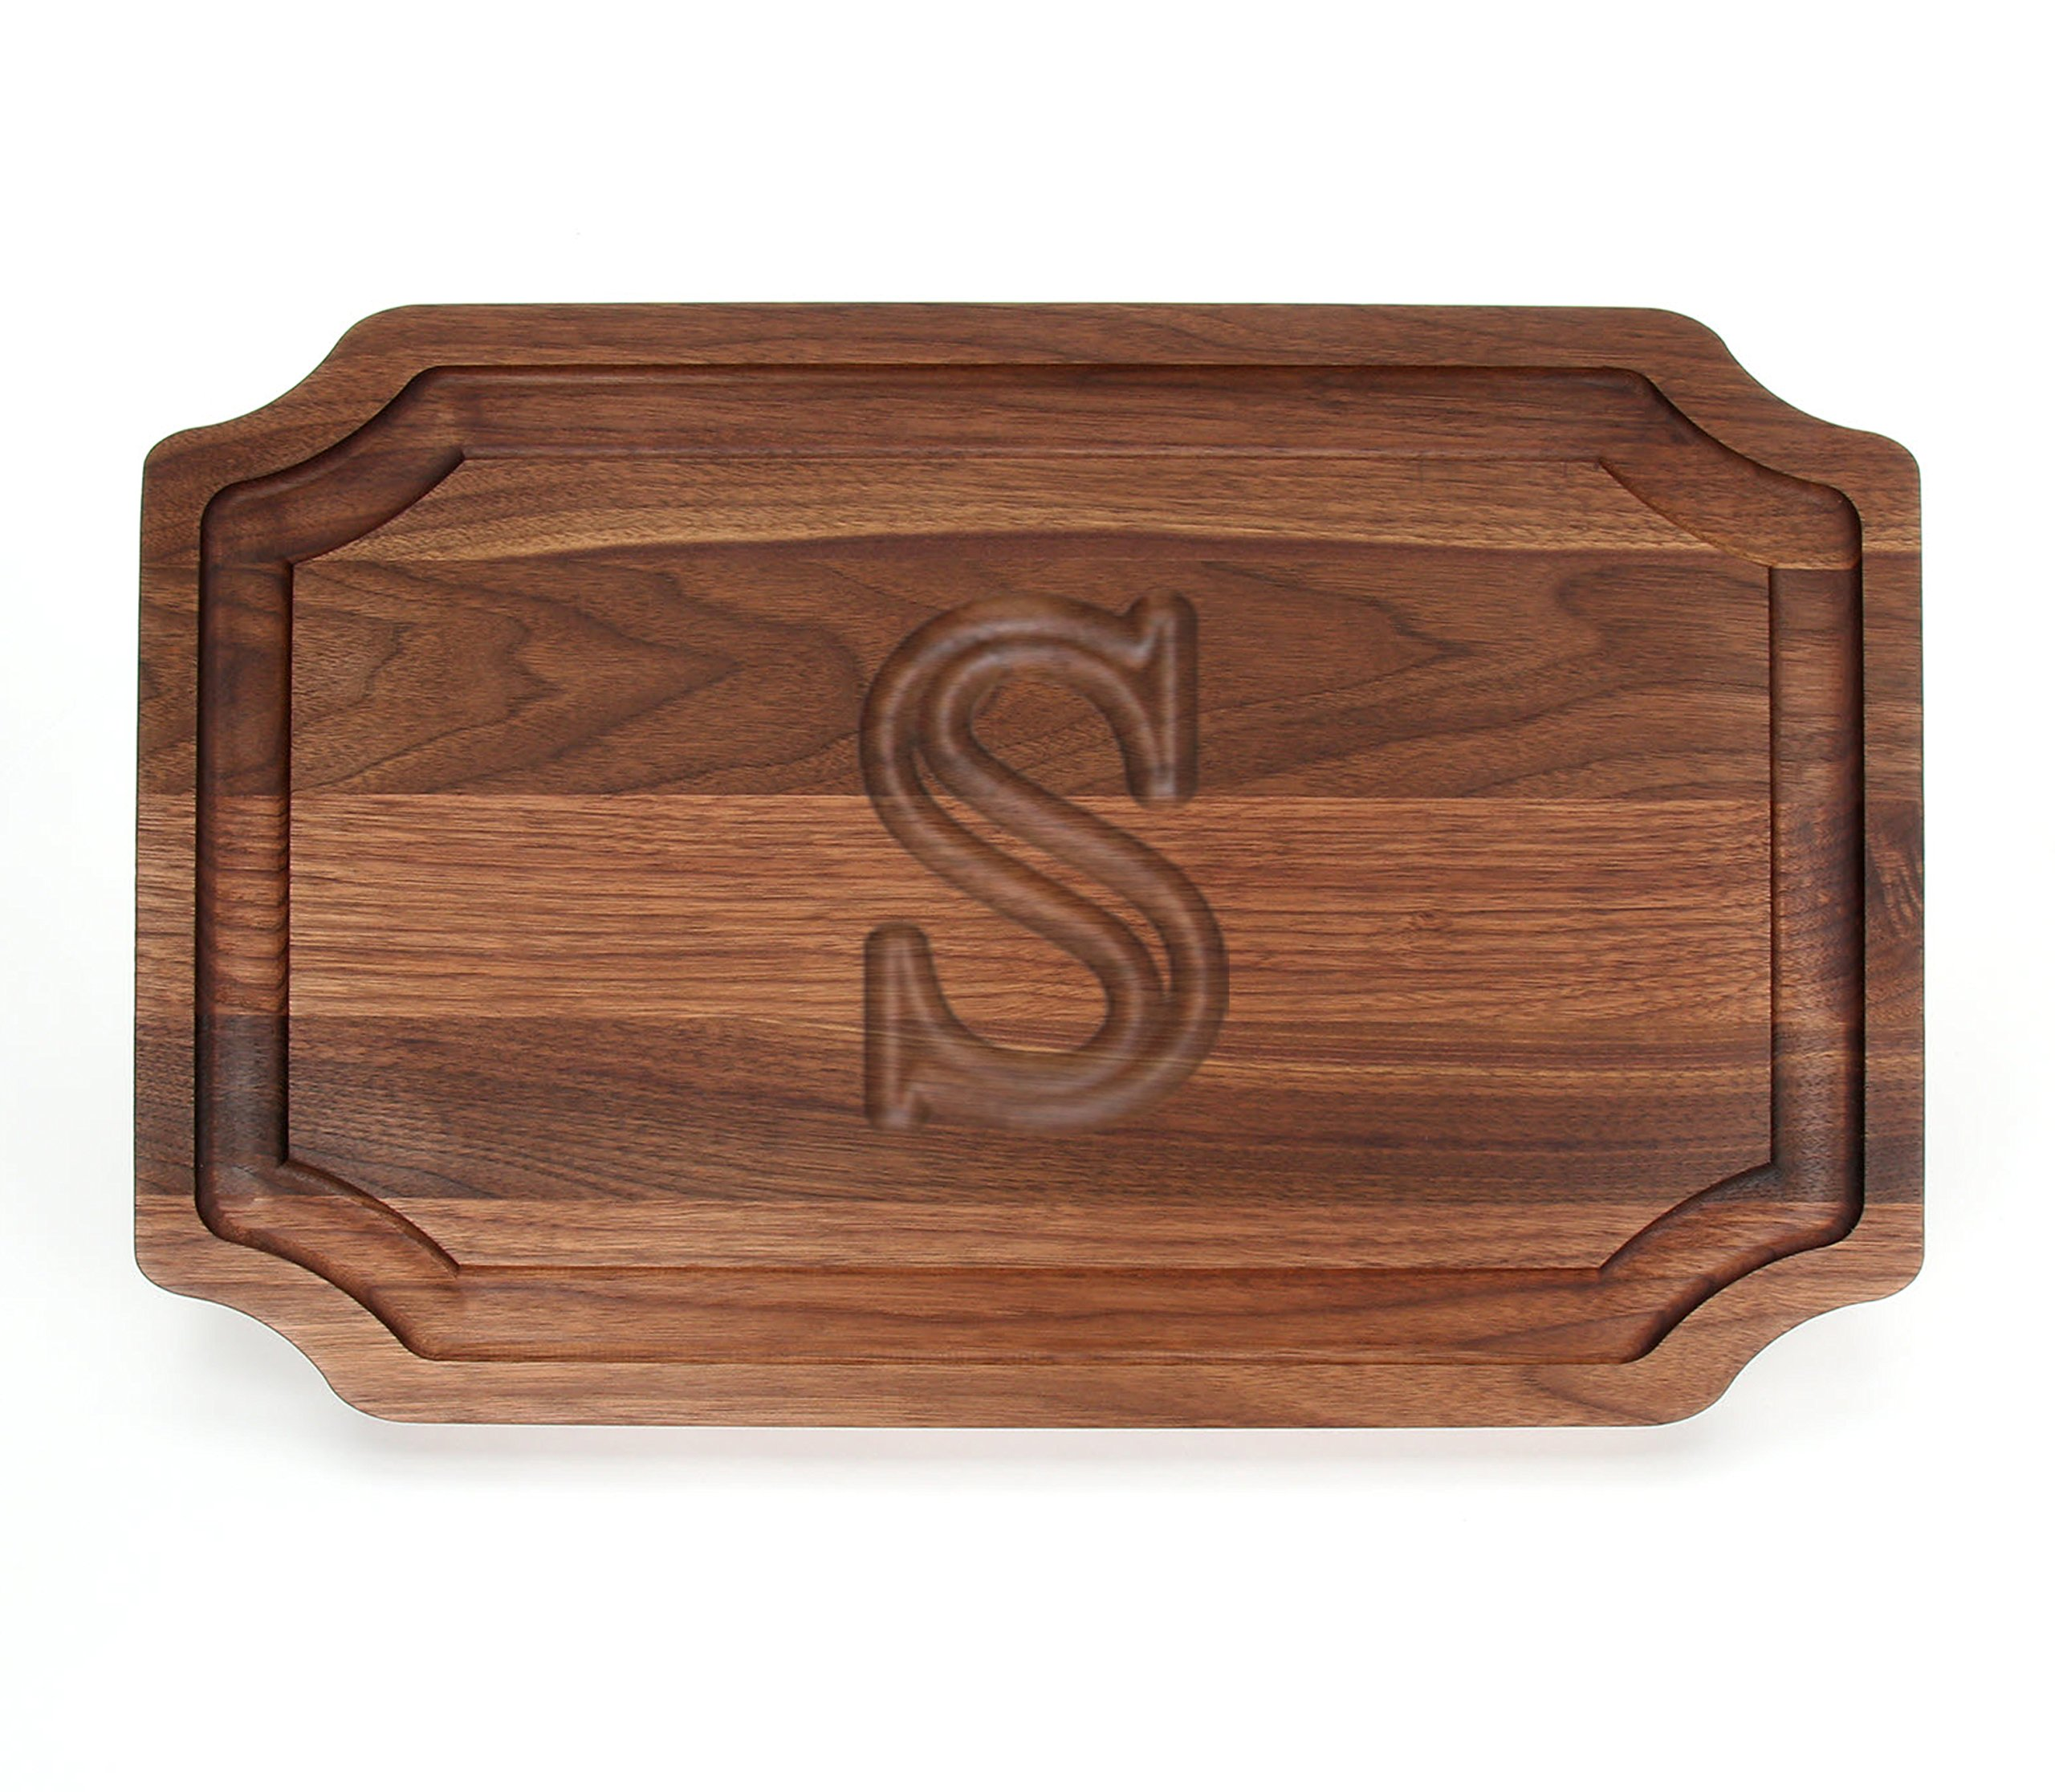 BigWood Boards W320-S Carving Board, Carving Board with Juice Well, Large Personalized Cutting Board with Juice Groove, Walnut Serving Platter, ''S'' by BigWood Boards